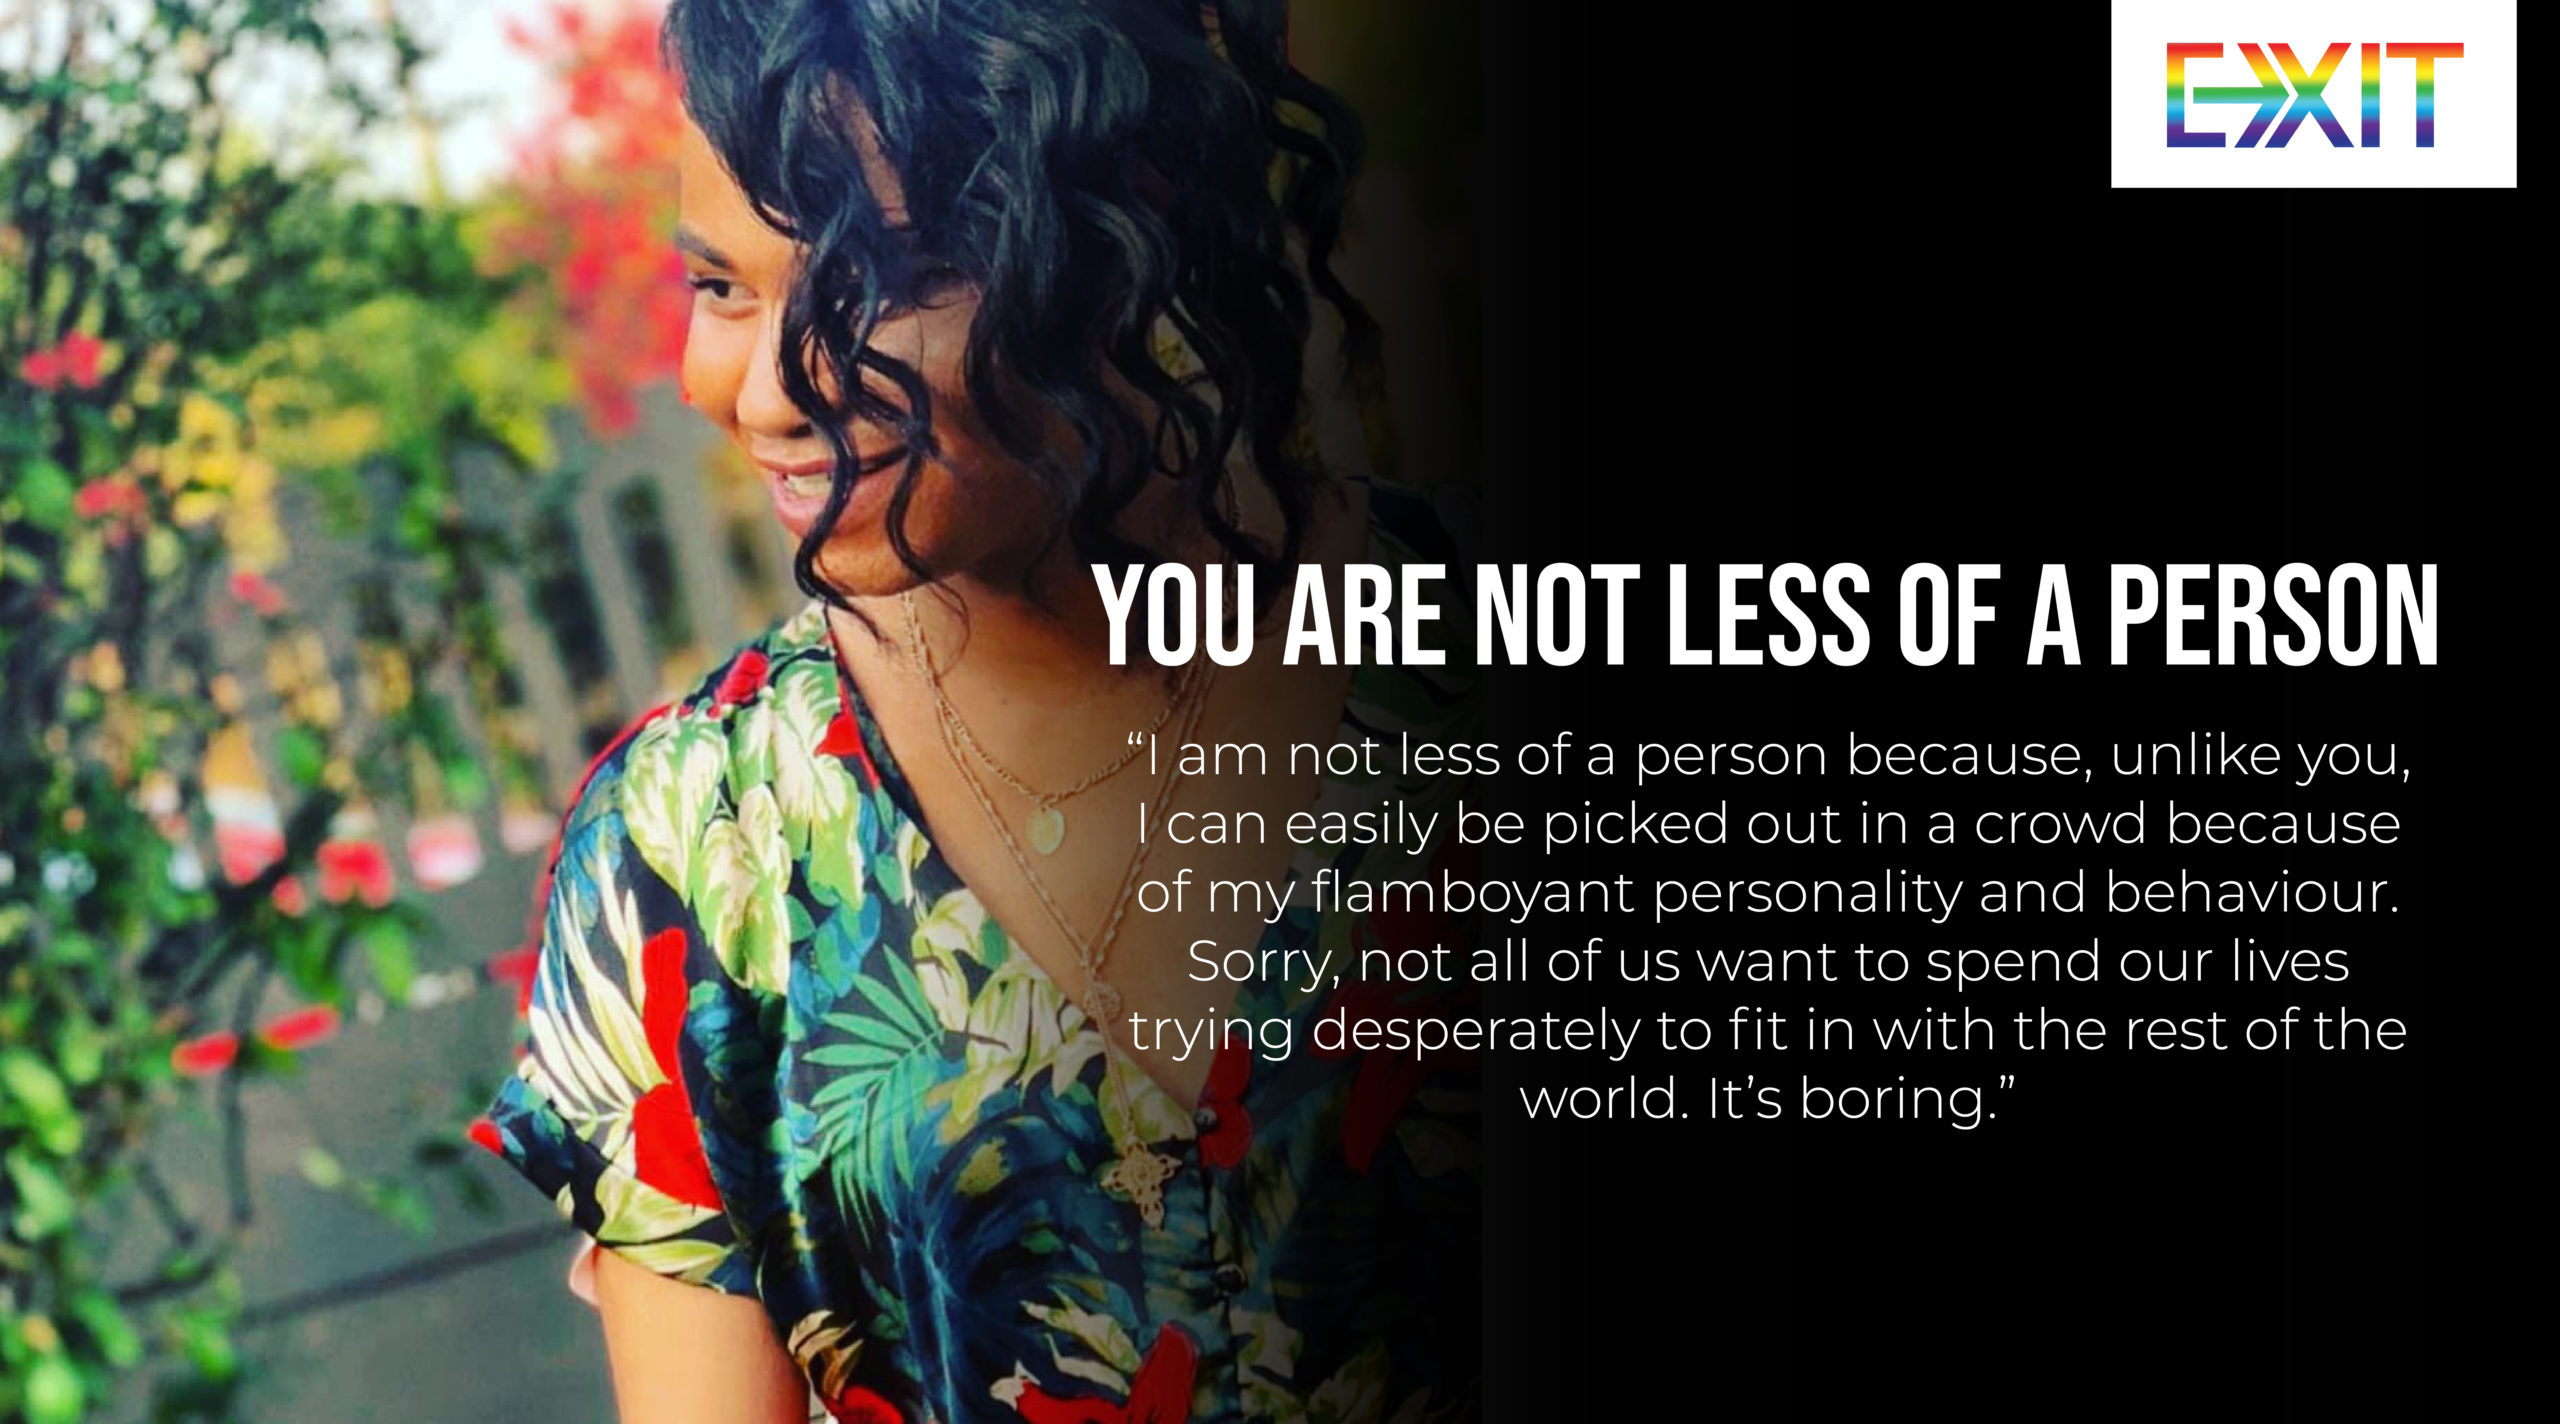 YOU ARE NOT LESS OF A PERSON